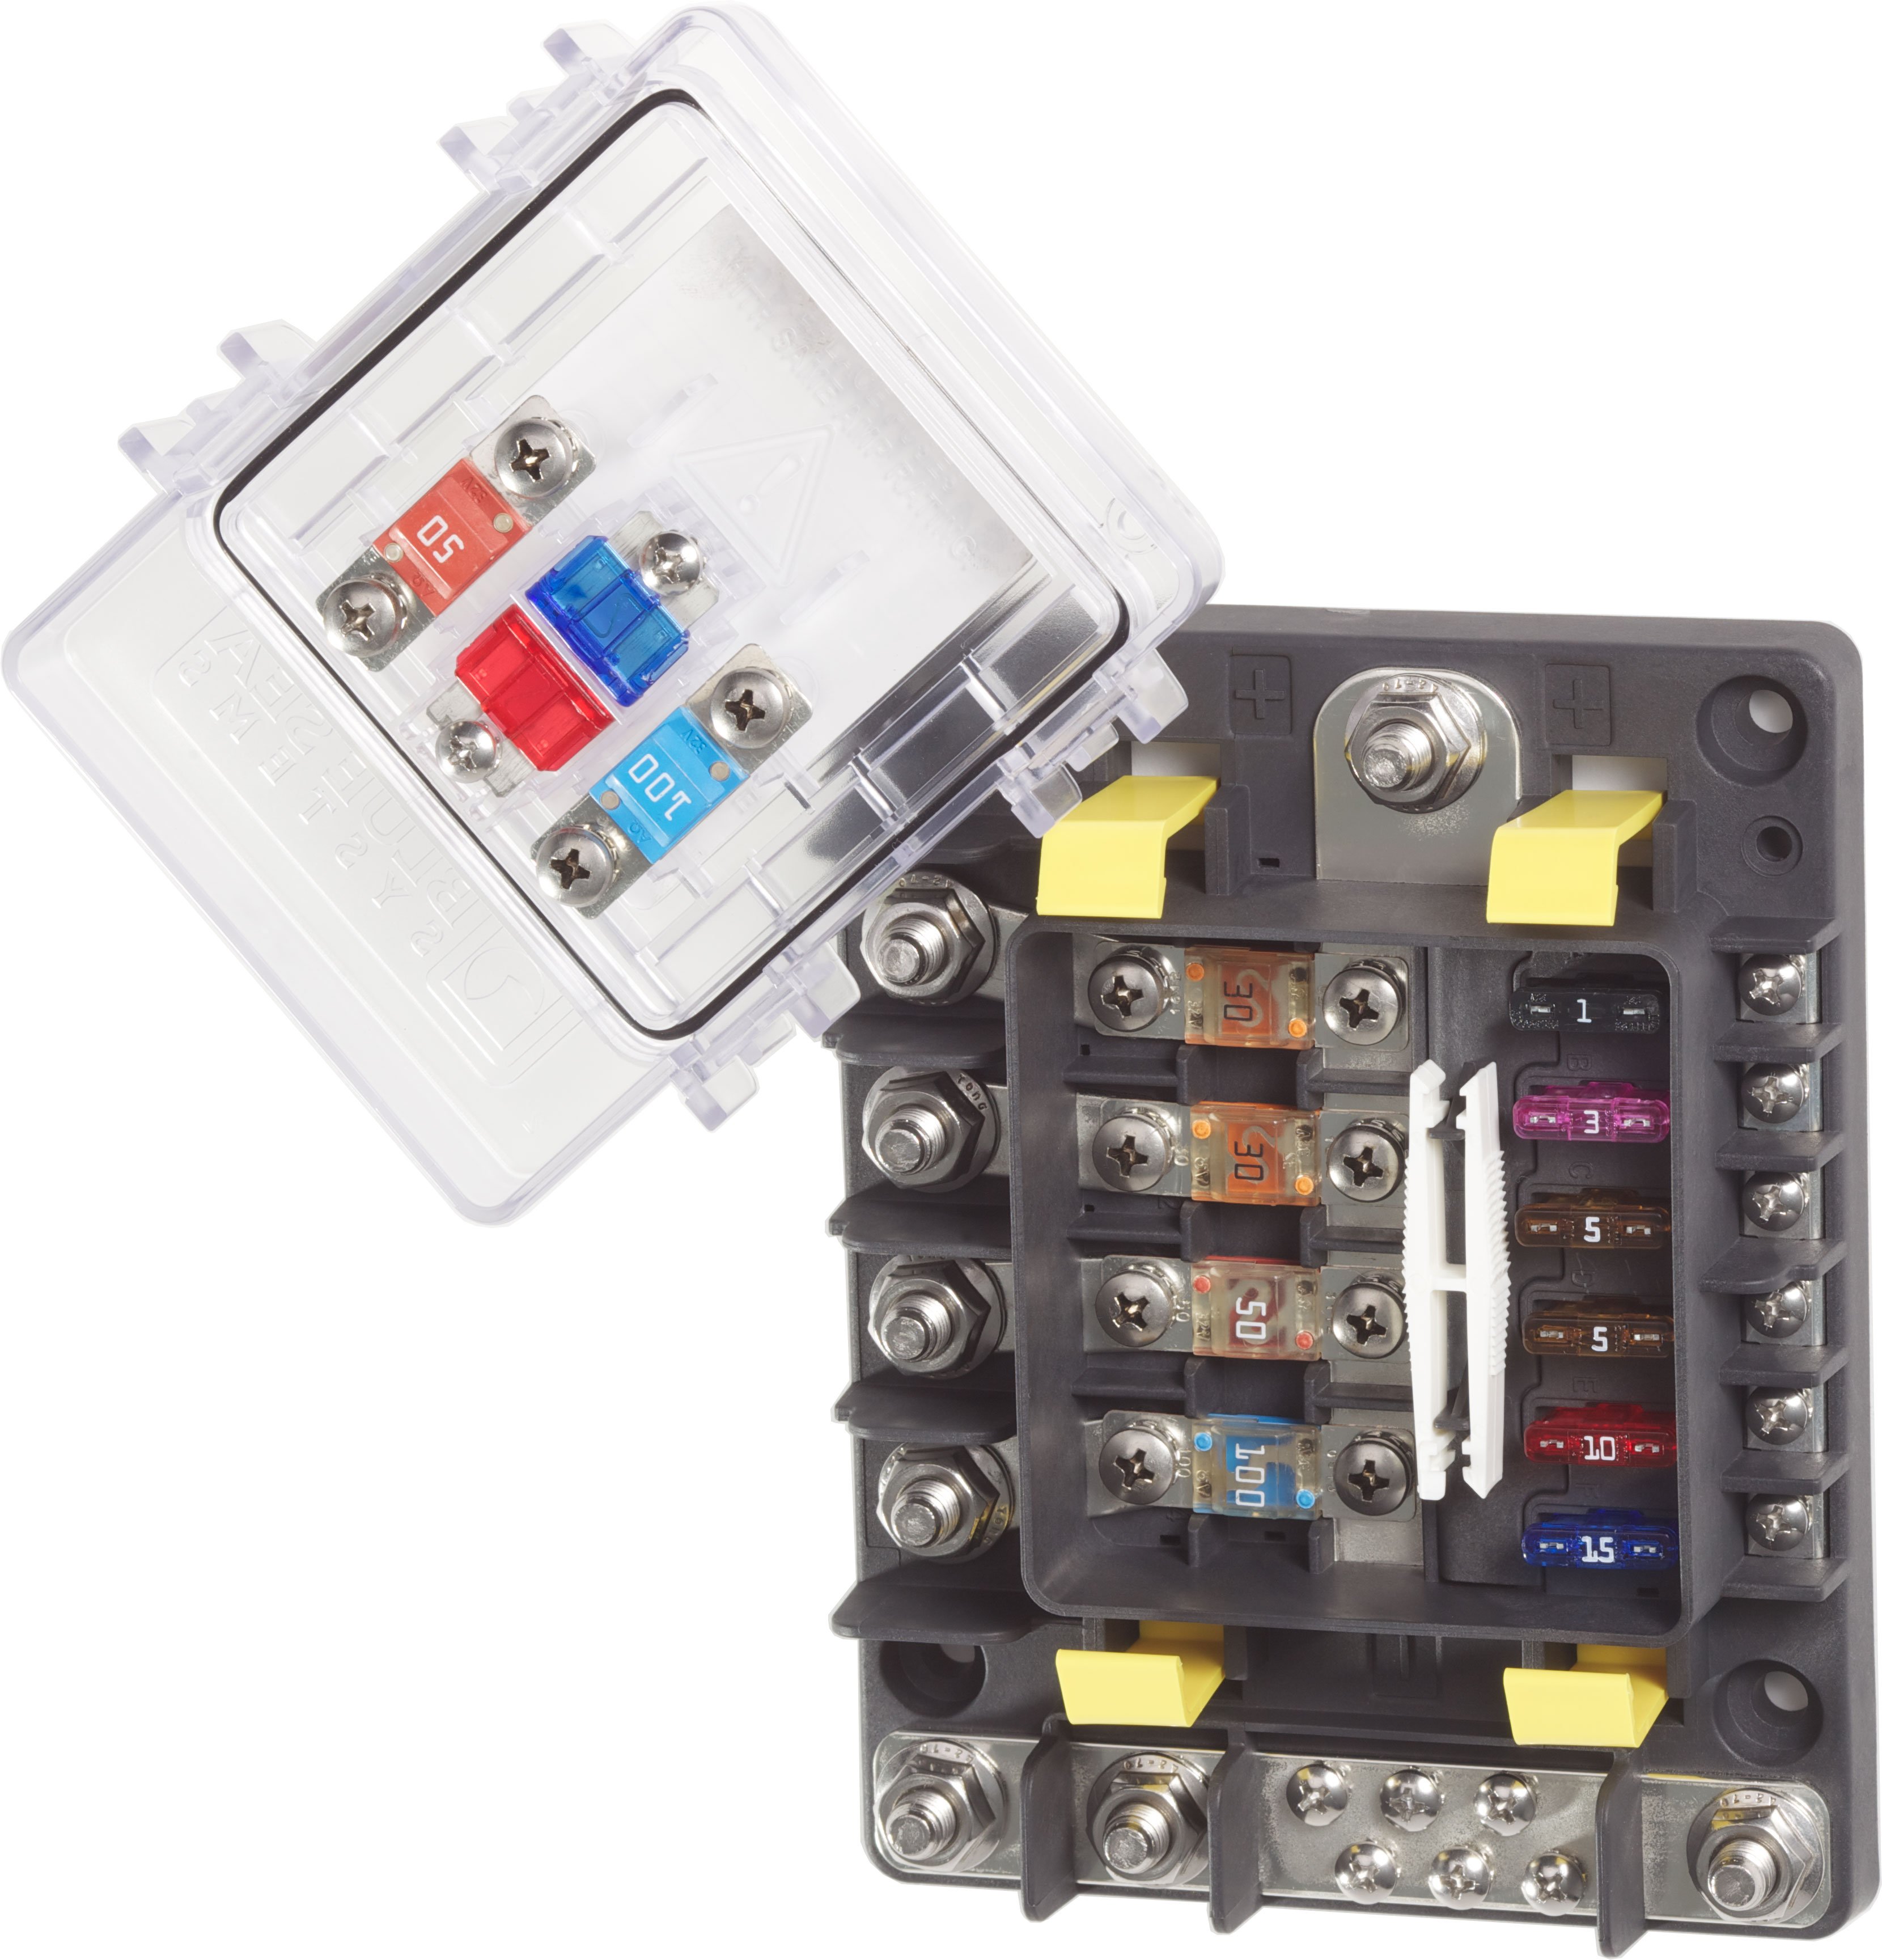 12 Volt Mini Fuse Box Wiring Diagram Todays Utv Accessory Product Library 2007 Yaris Location